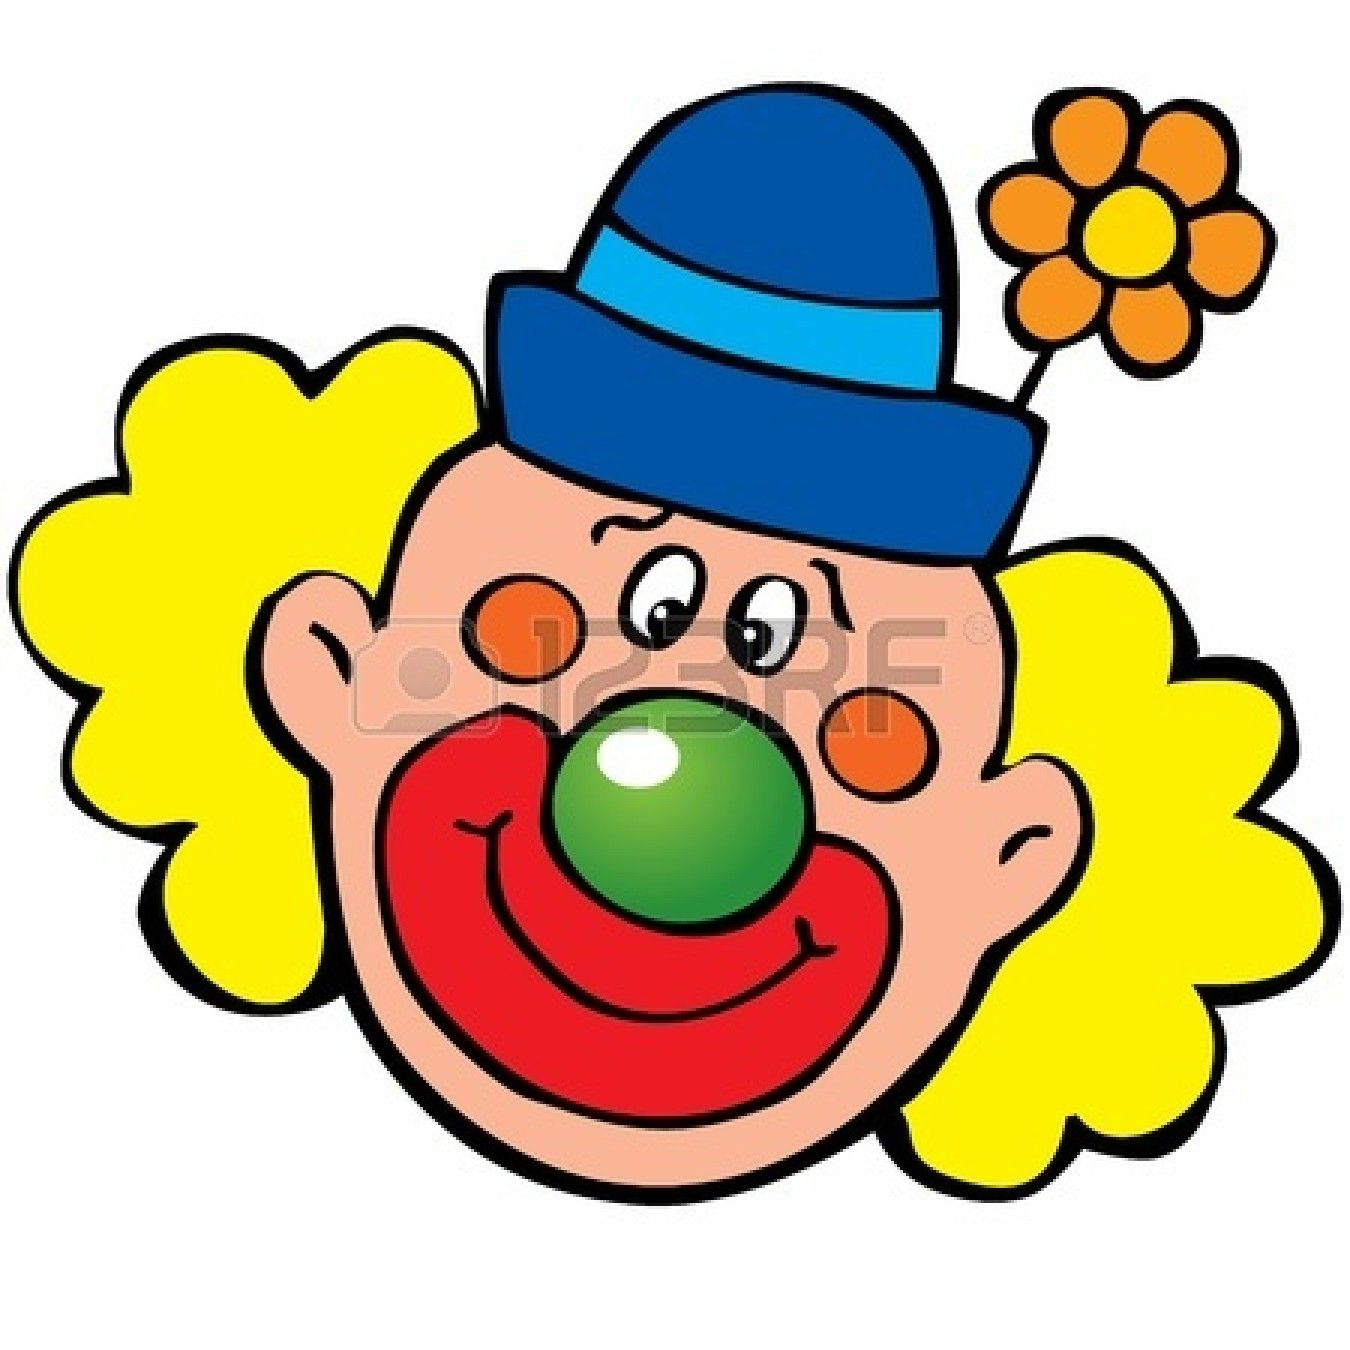 Clown clipart. Face clip art happy